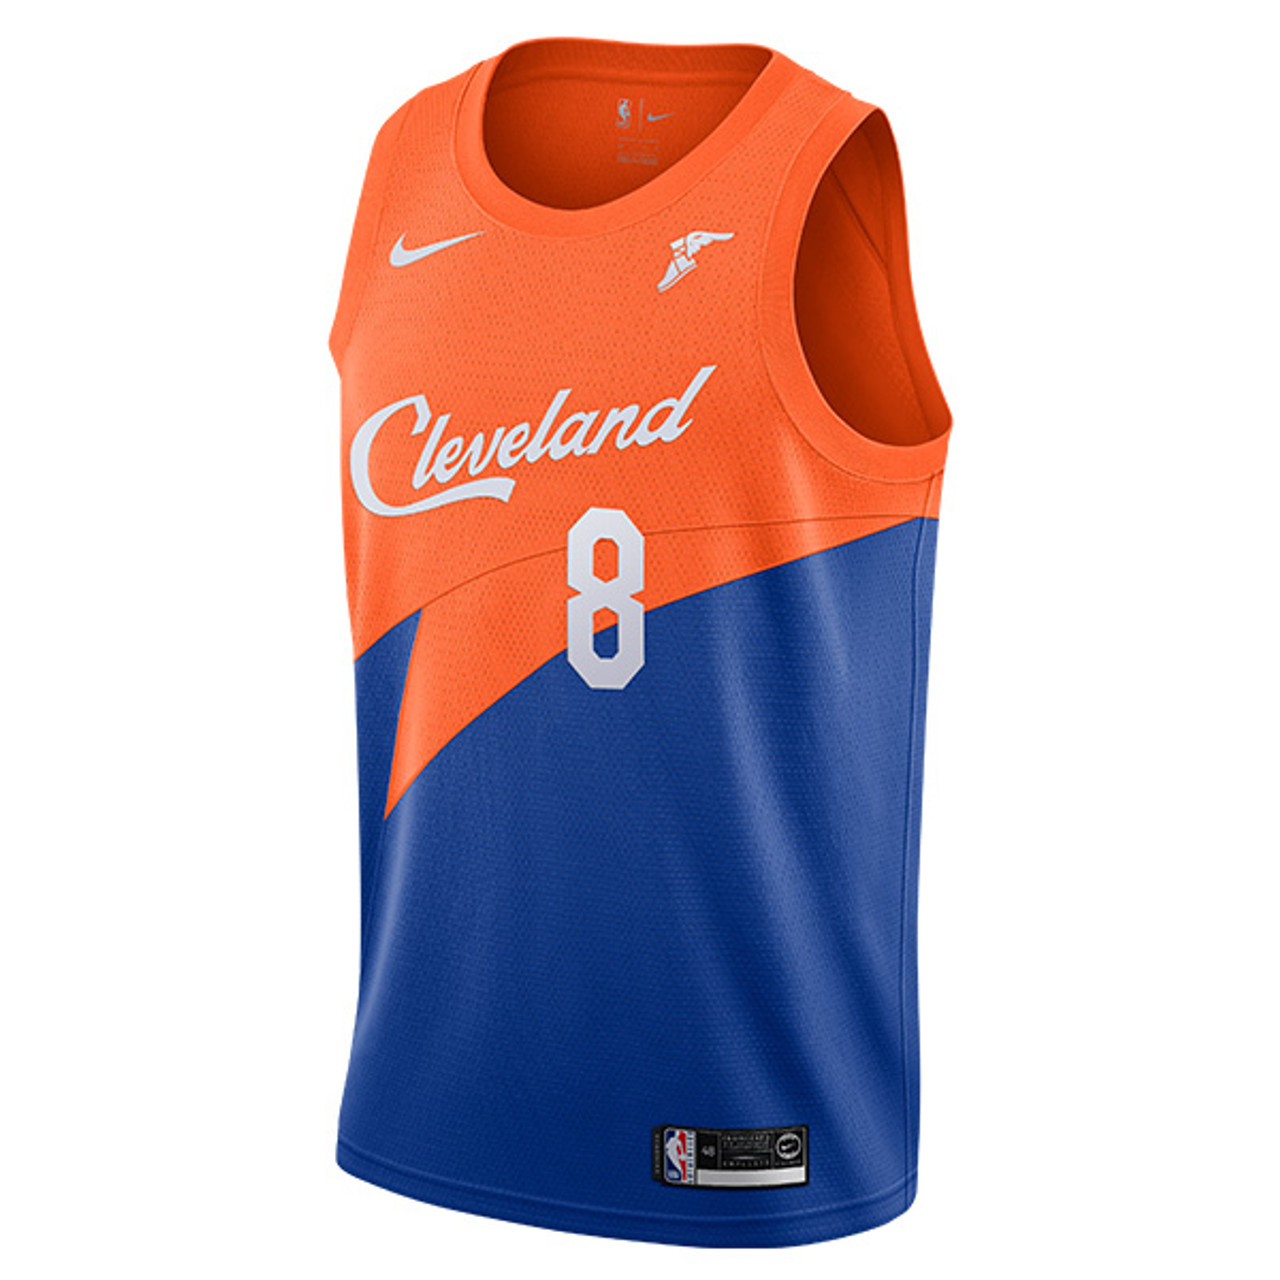 1c992853d2f3 Jordan Clarkson Royal Blue   Orange City Edition Swingman Jersey with  Goodyear Wingfoot by Nike